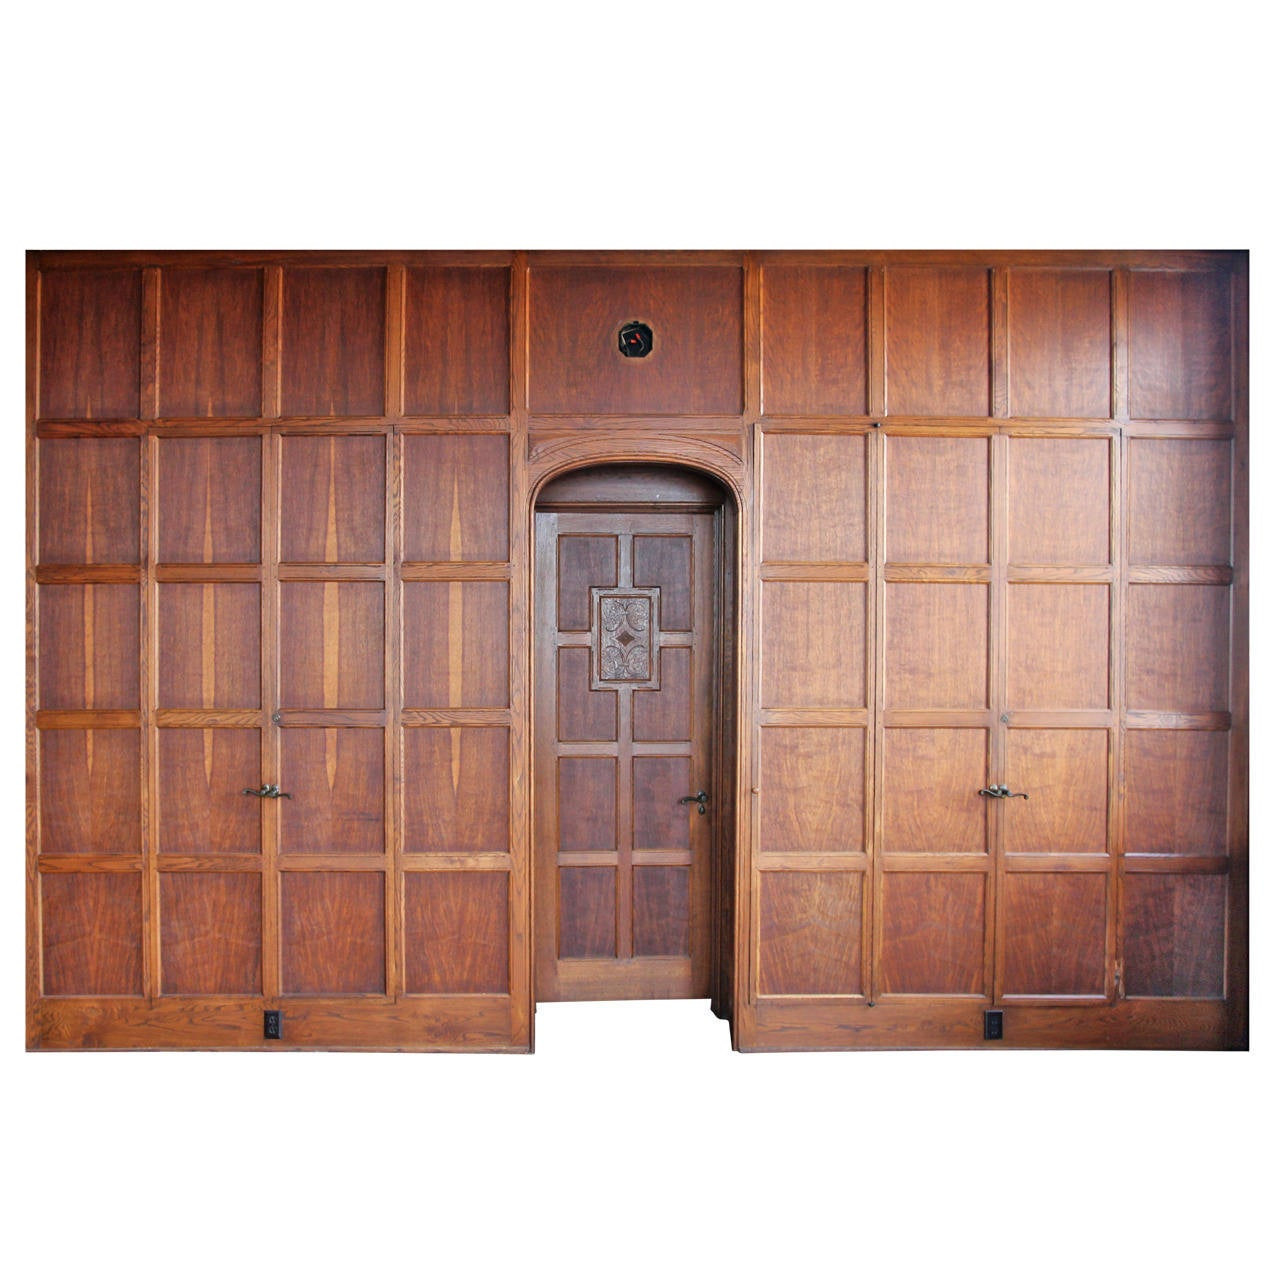 Tudor Style Solid Oak Paneled Room from Two Rivers, Wisconsin at ...